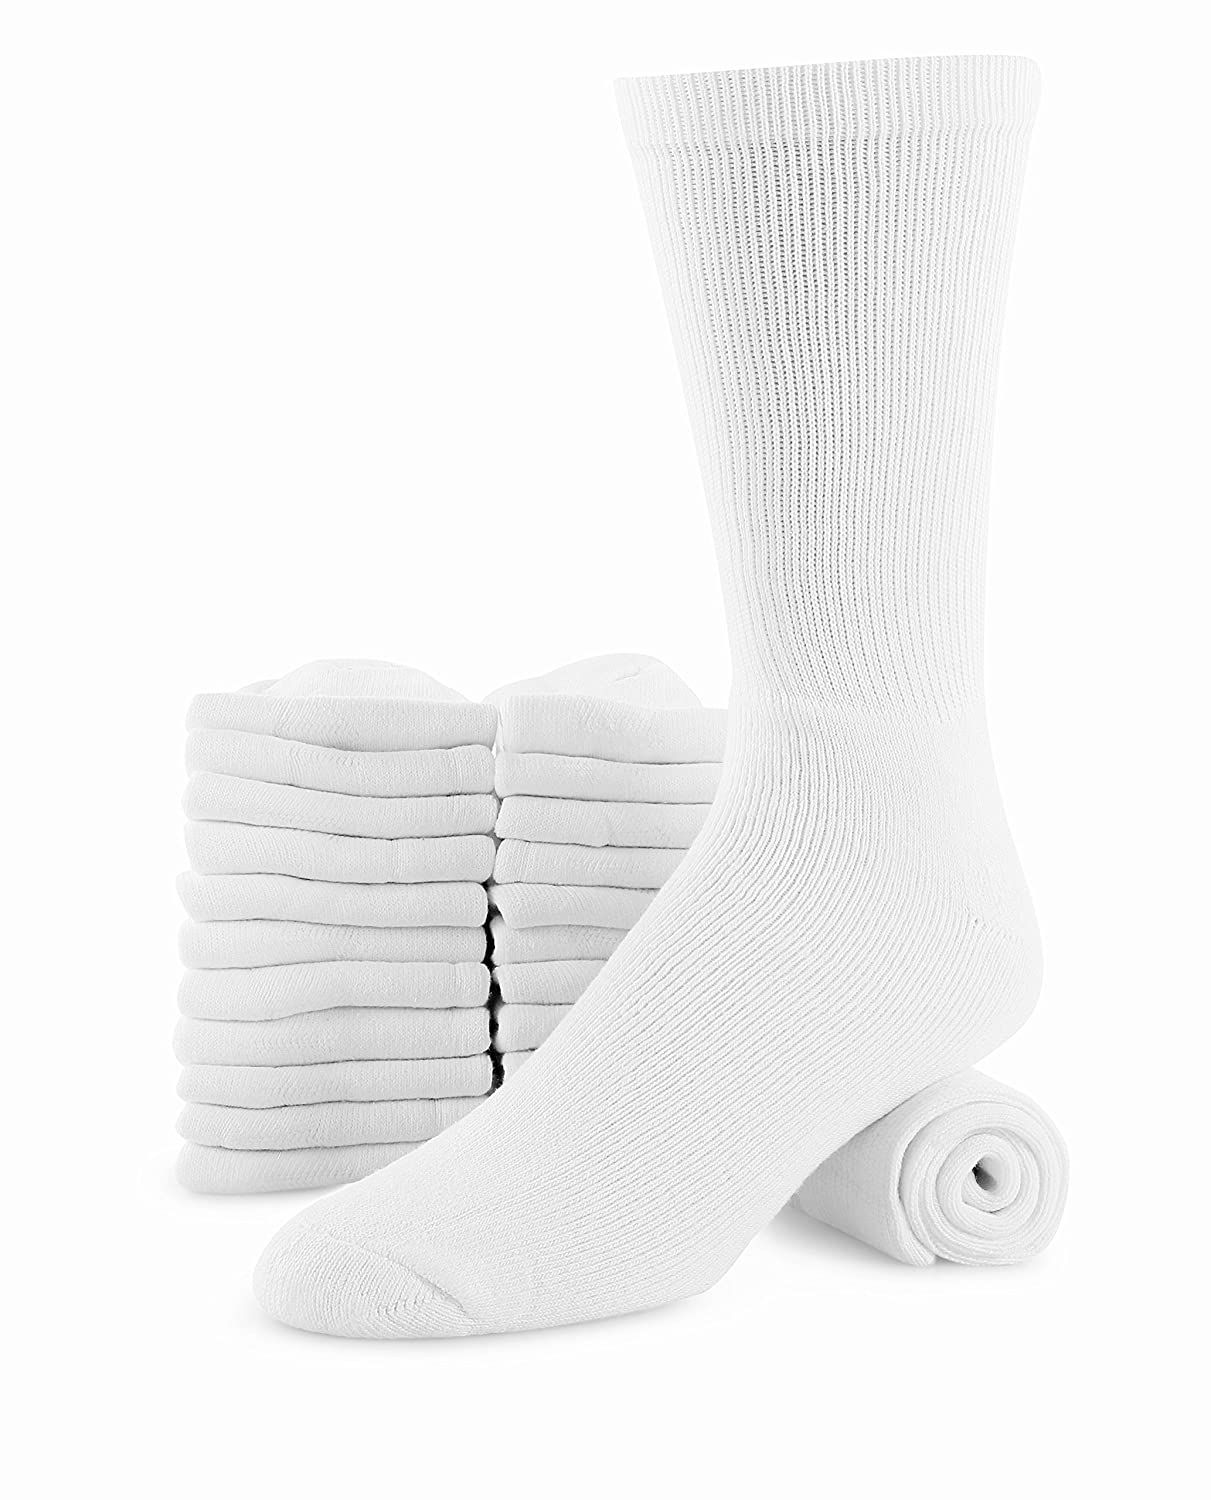 12 Pairs Cotton Sports Cushion Socks Made For Top Brand Name